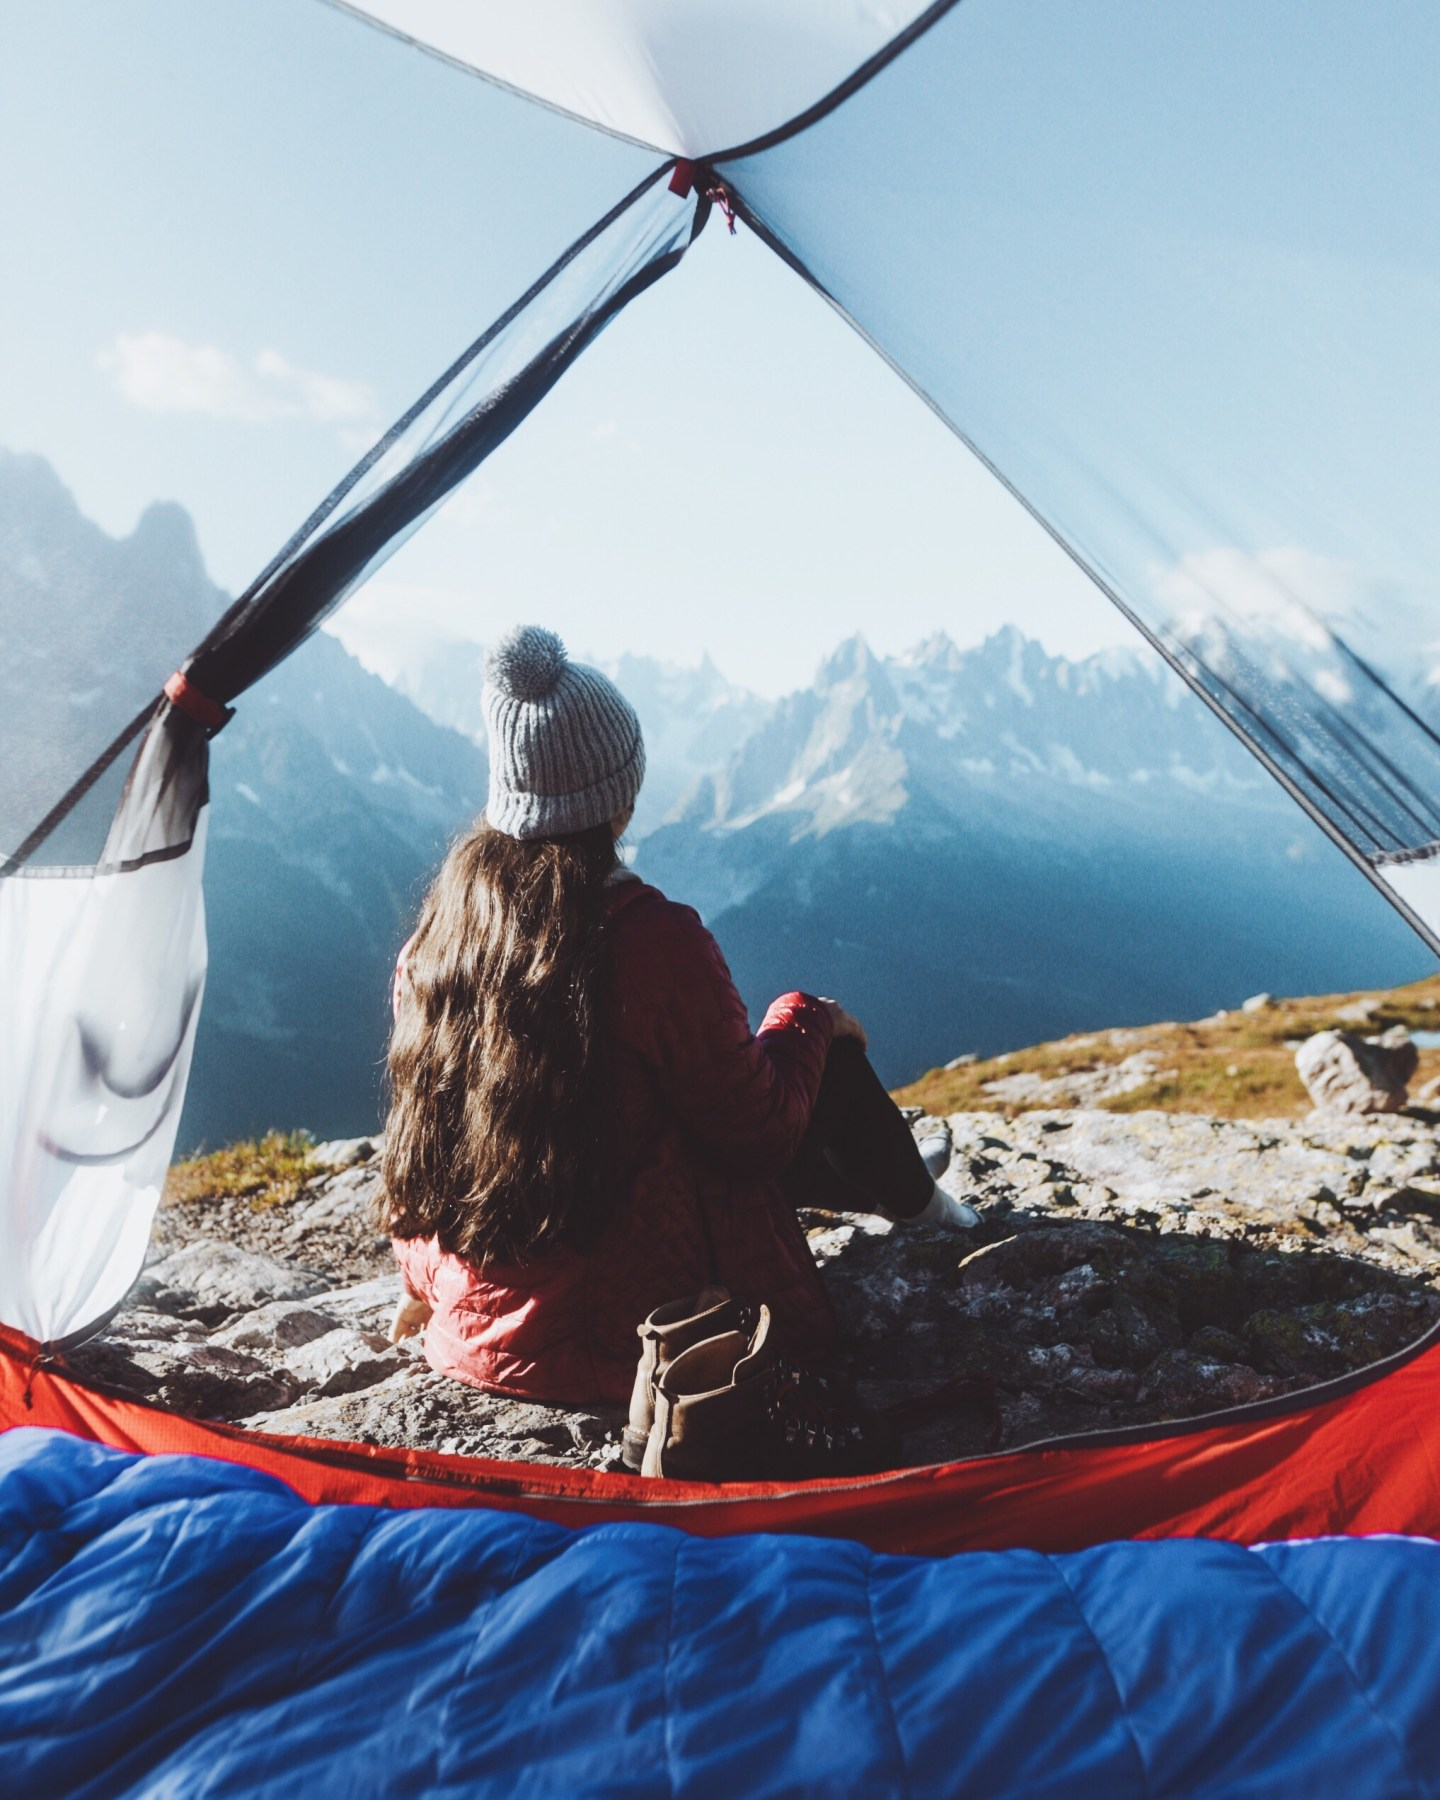 Girl sitting in the frame of a tent with sharp mountains in the distance